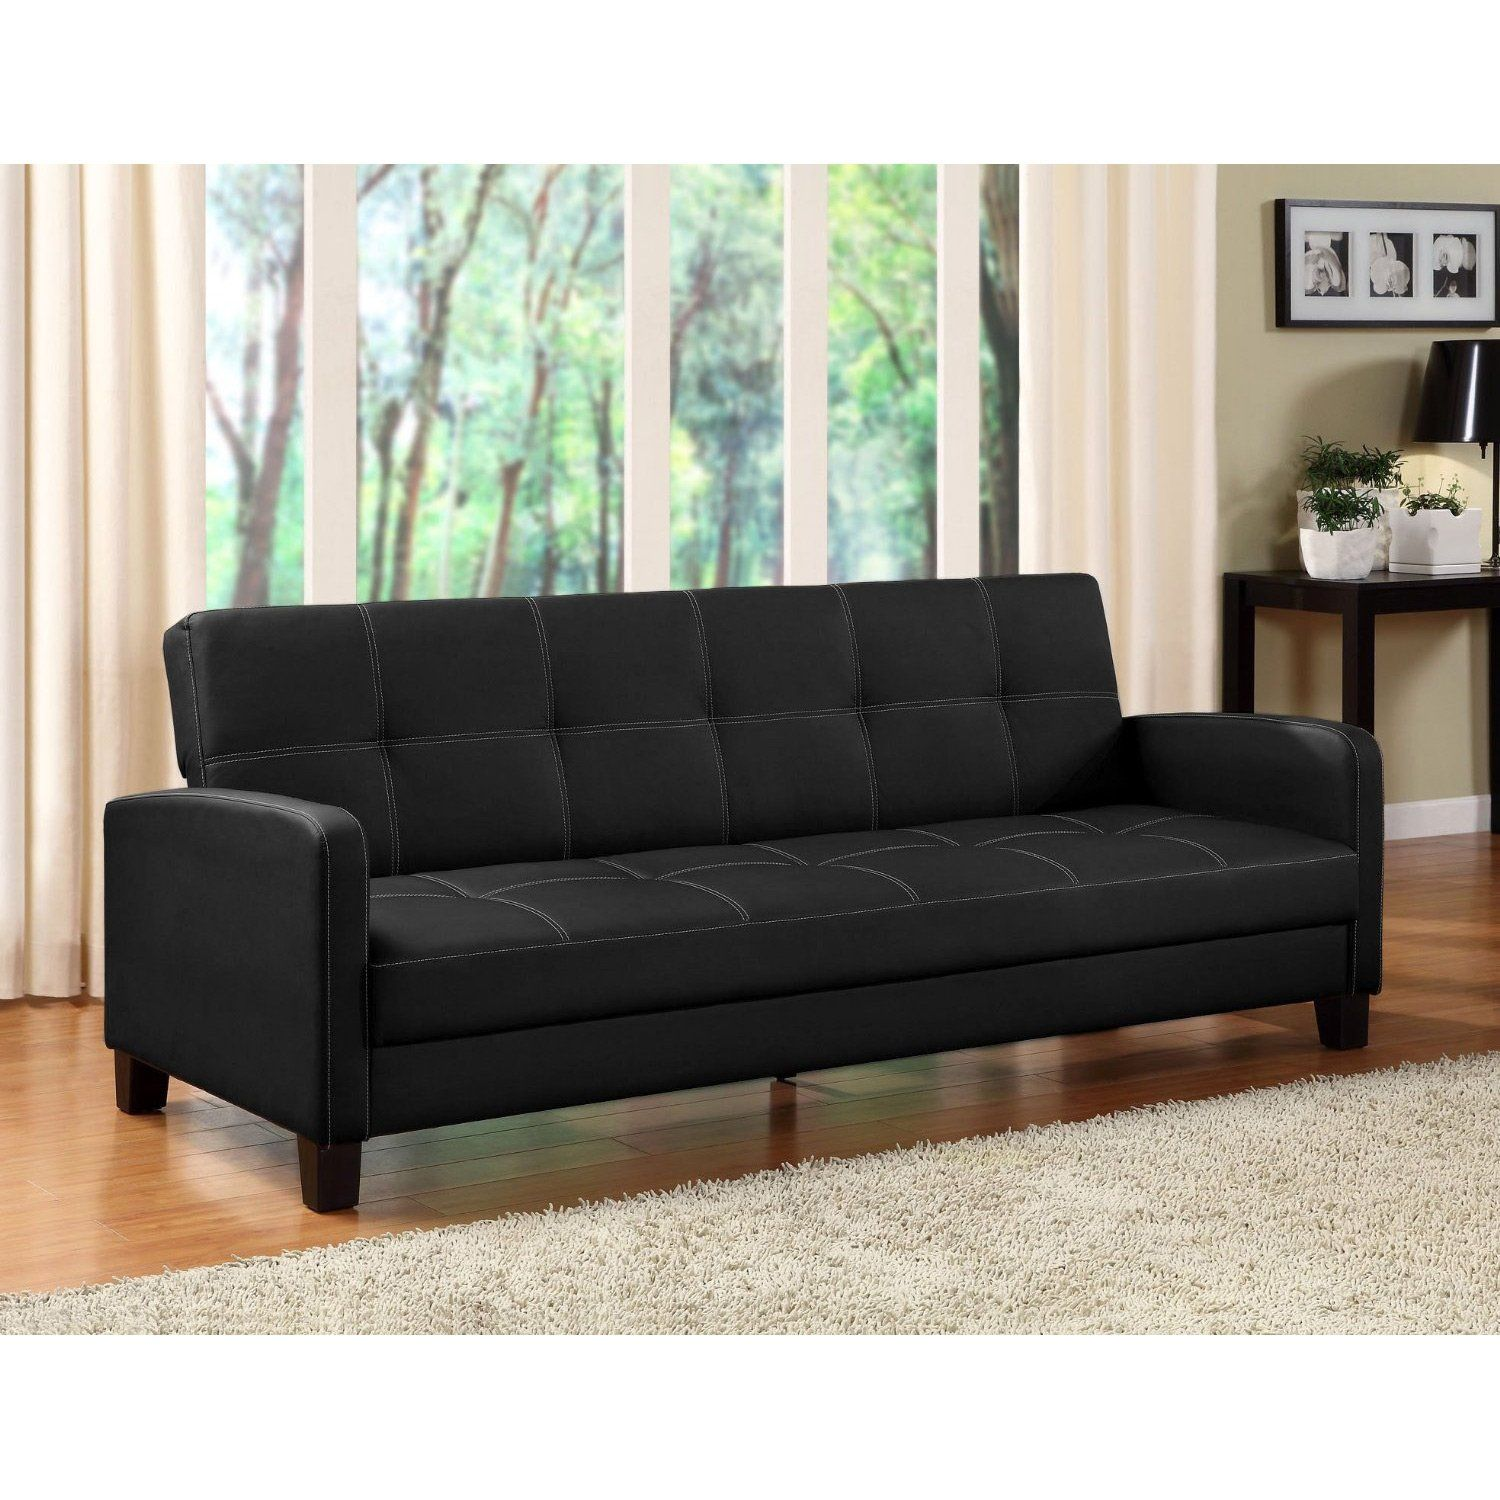 This Clic Black Faux Leather Futon Sofa Sleeper Will Add Style To Your Living Room With Its Rich Upholstery Beautiful Contrast Sching